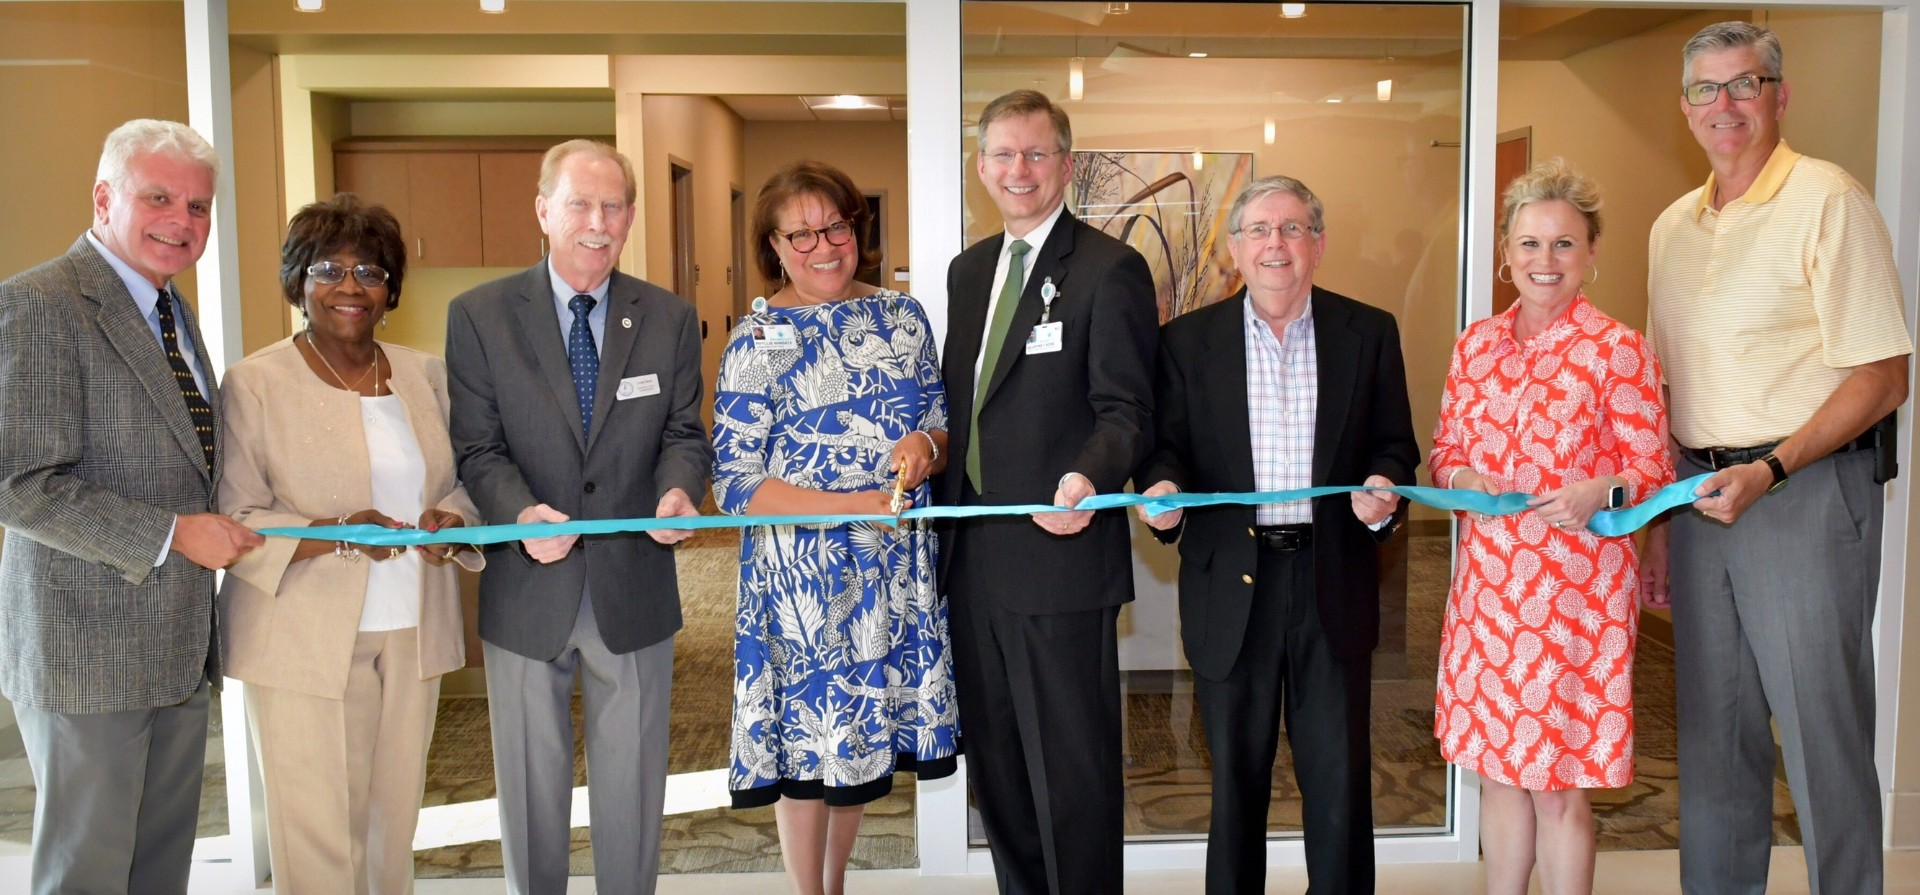 New Atrium Health Heart and Vascular Tower Expands Cardiovascular, Radiology Services for Patients in Cabarrus, Rowan County Regions